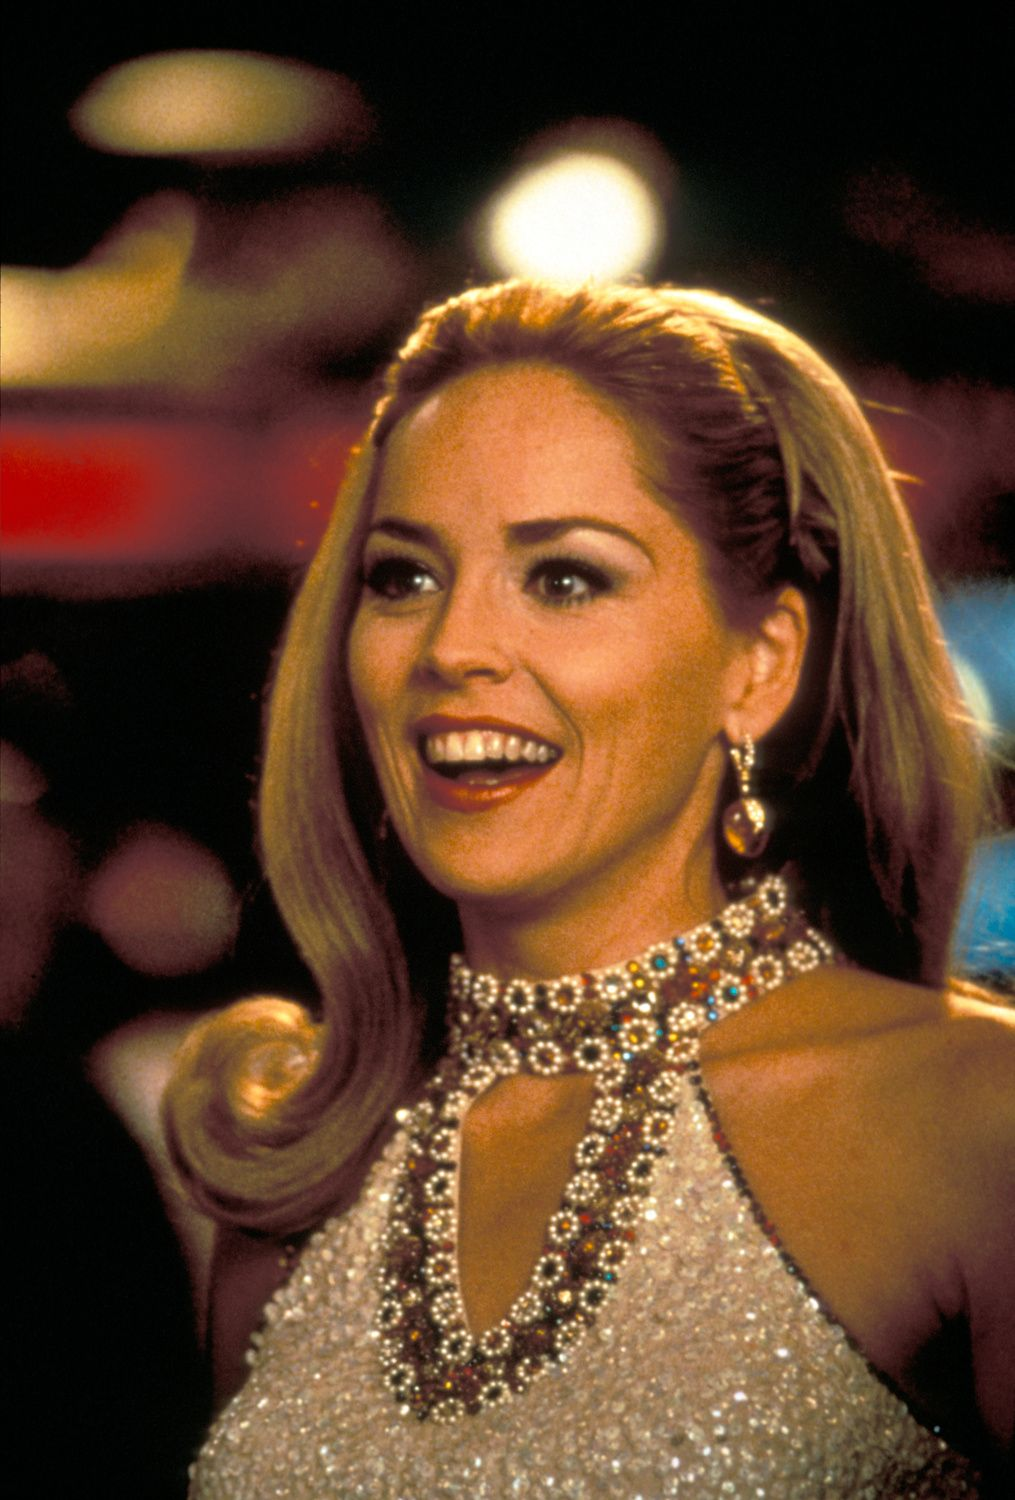 'Casino' 1995, Sharon Stone - Costume Design by John A. Dunn & Rita Ryack. by francine